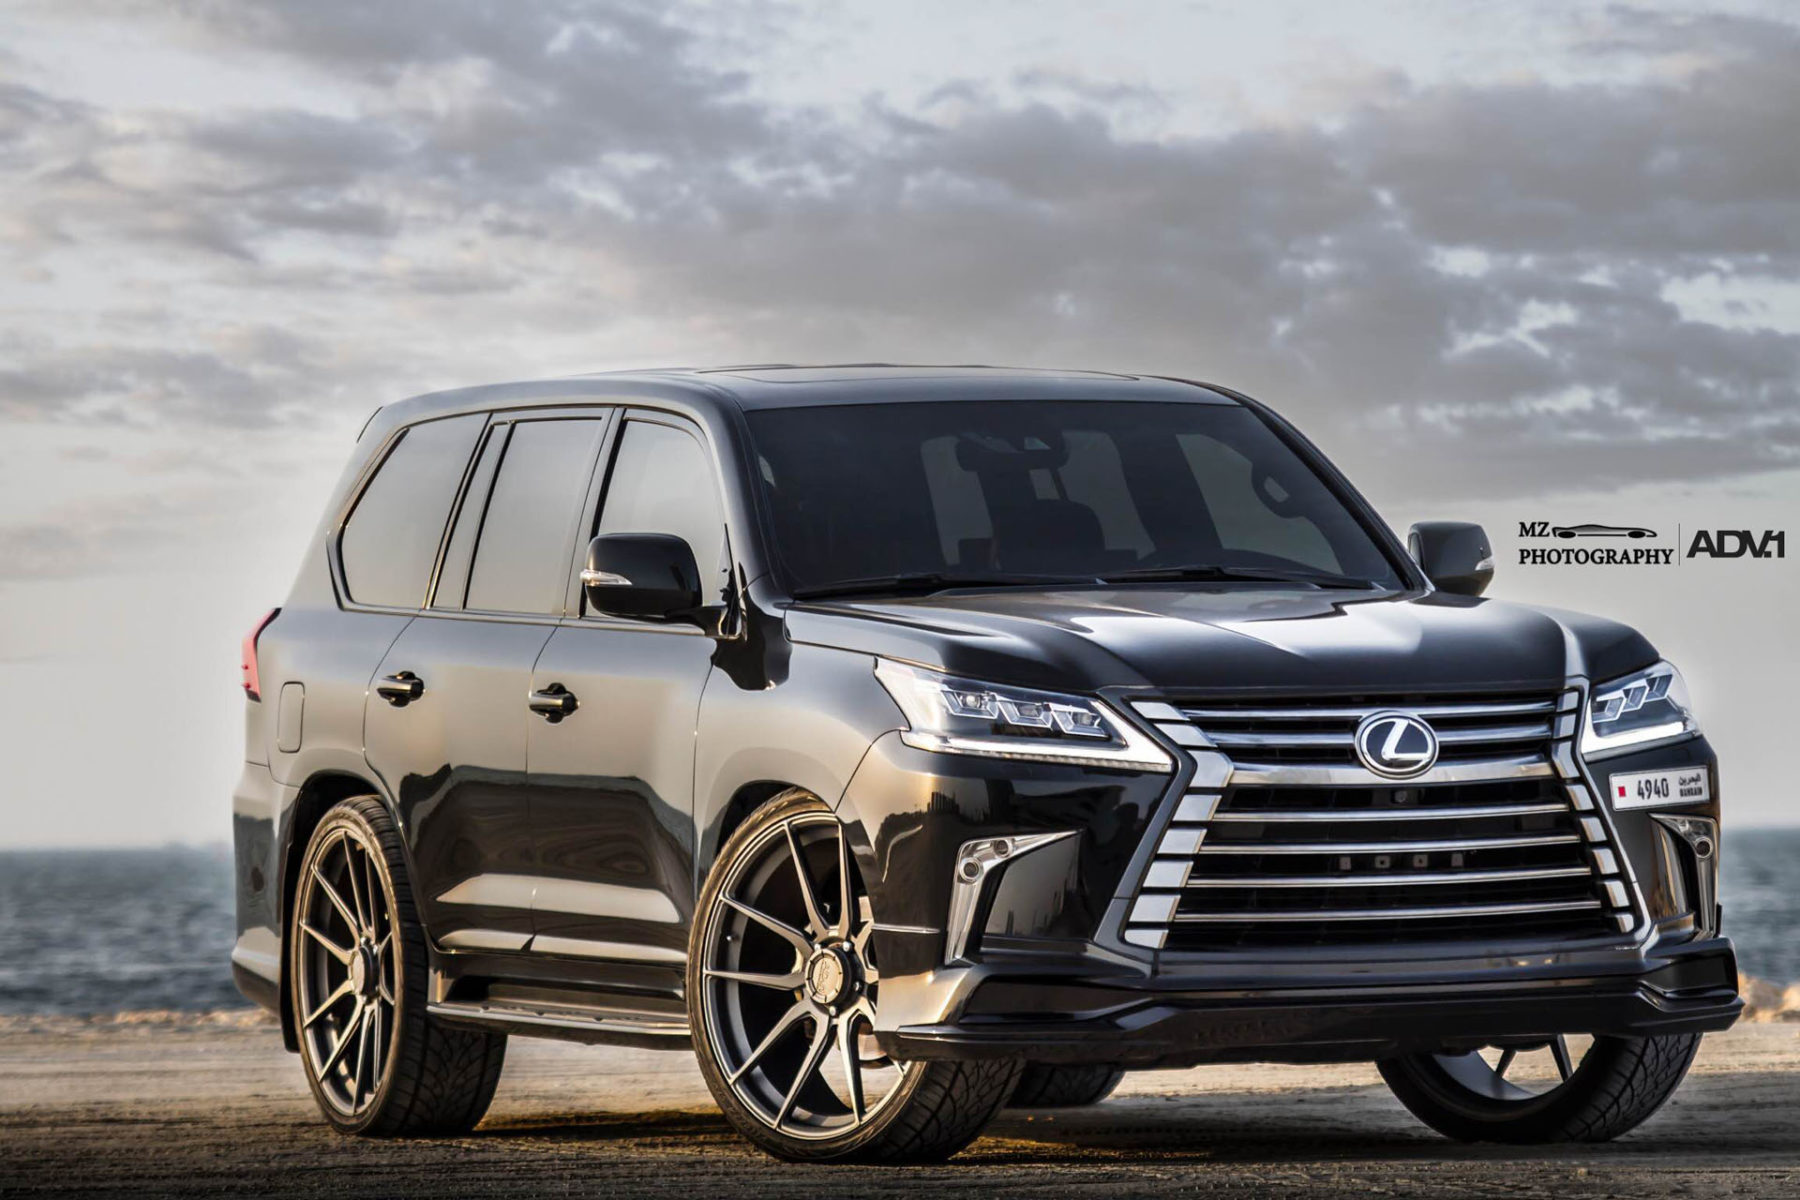 lexus lx570 adv5 2 m v1 cs matte gunmetal. Black Bedroom Furniture Sets. Home Design Ideas